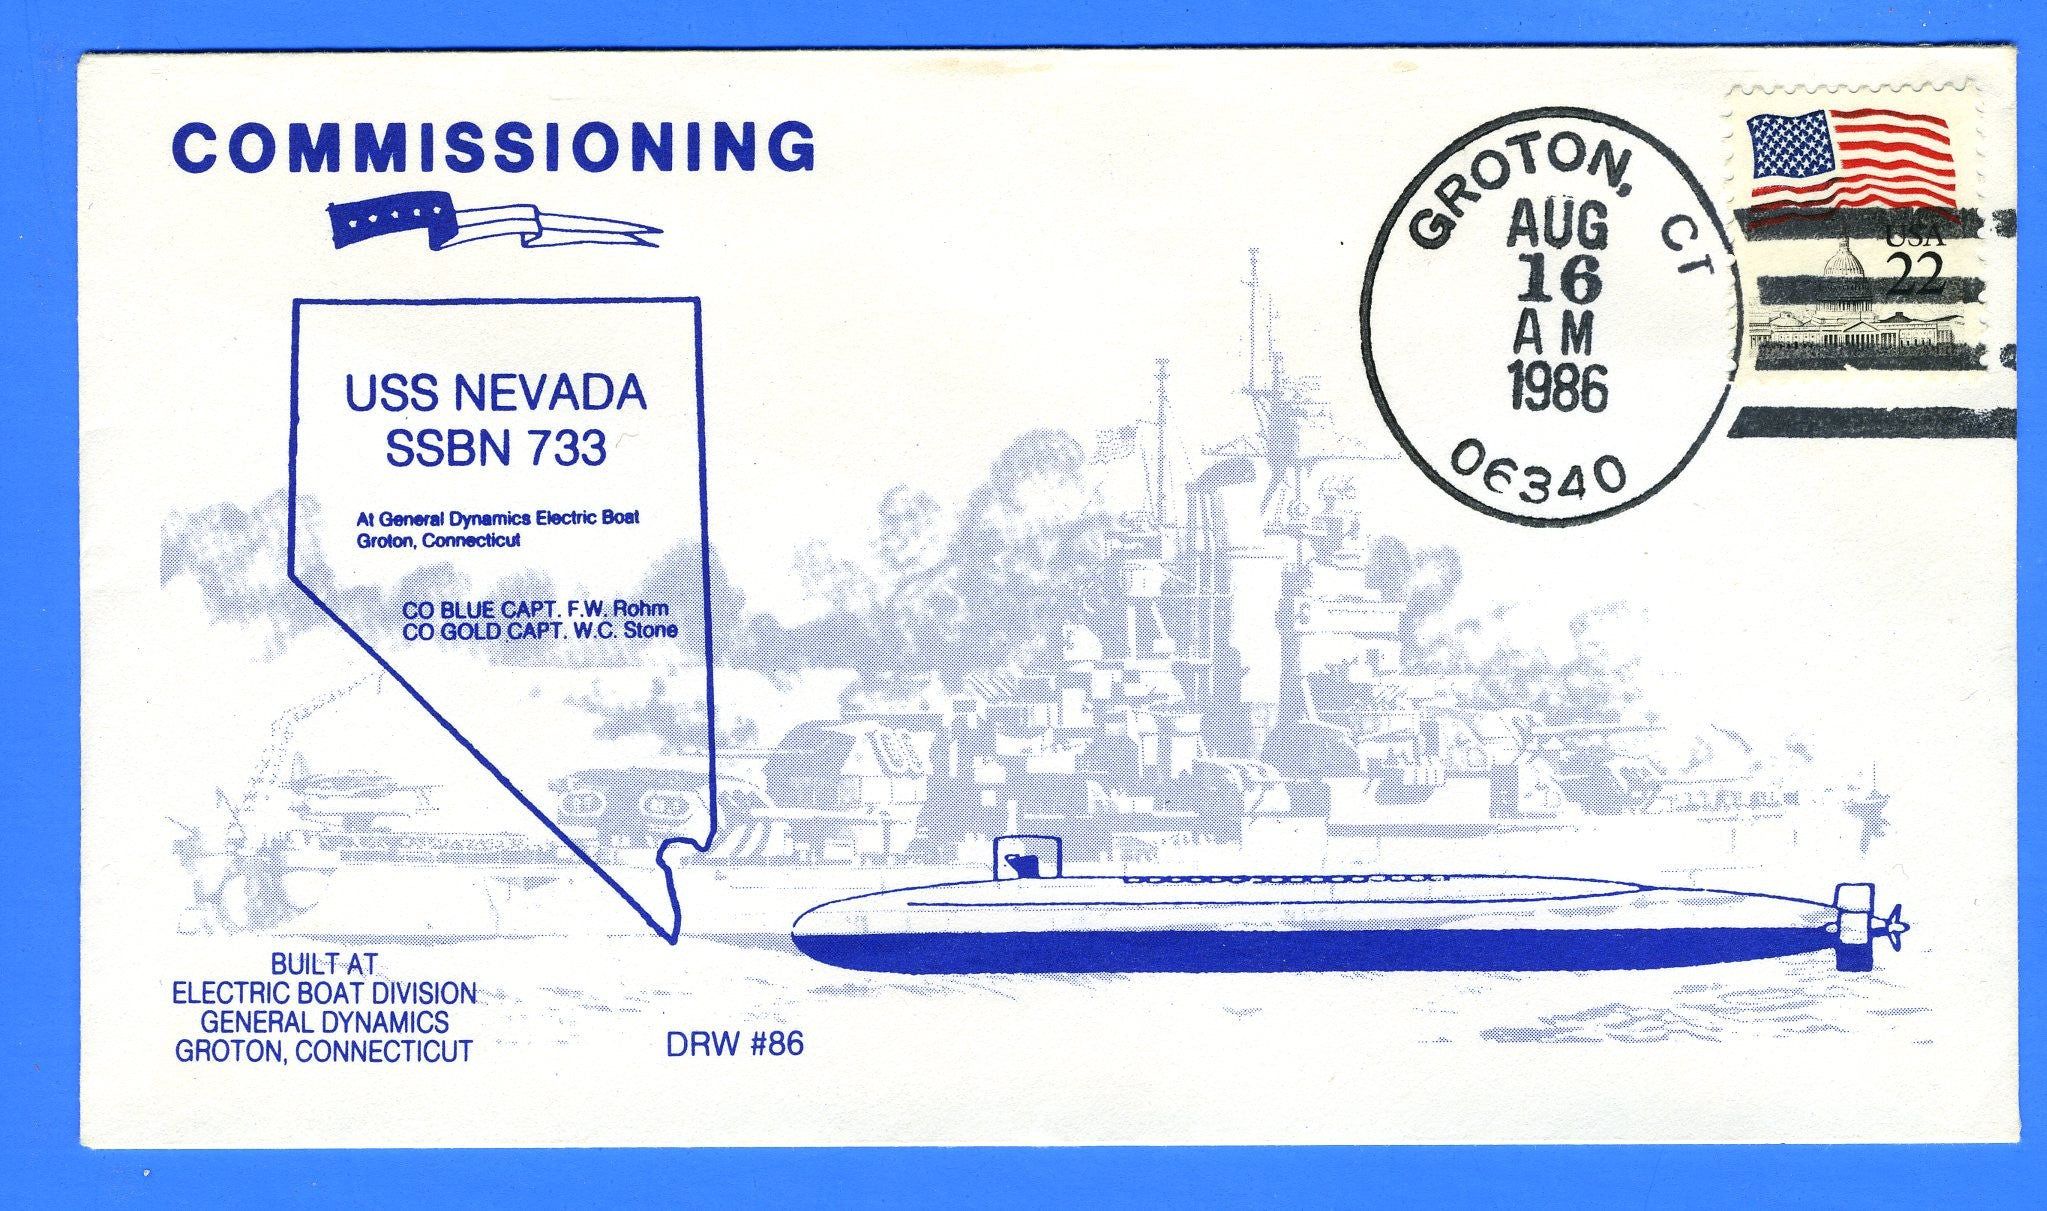 USS Nevada SSBN-733 Commissioned August 16, 1986 - Hand Cancel - DRW 86